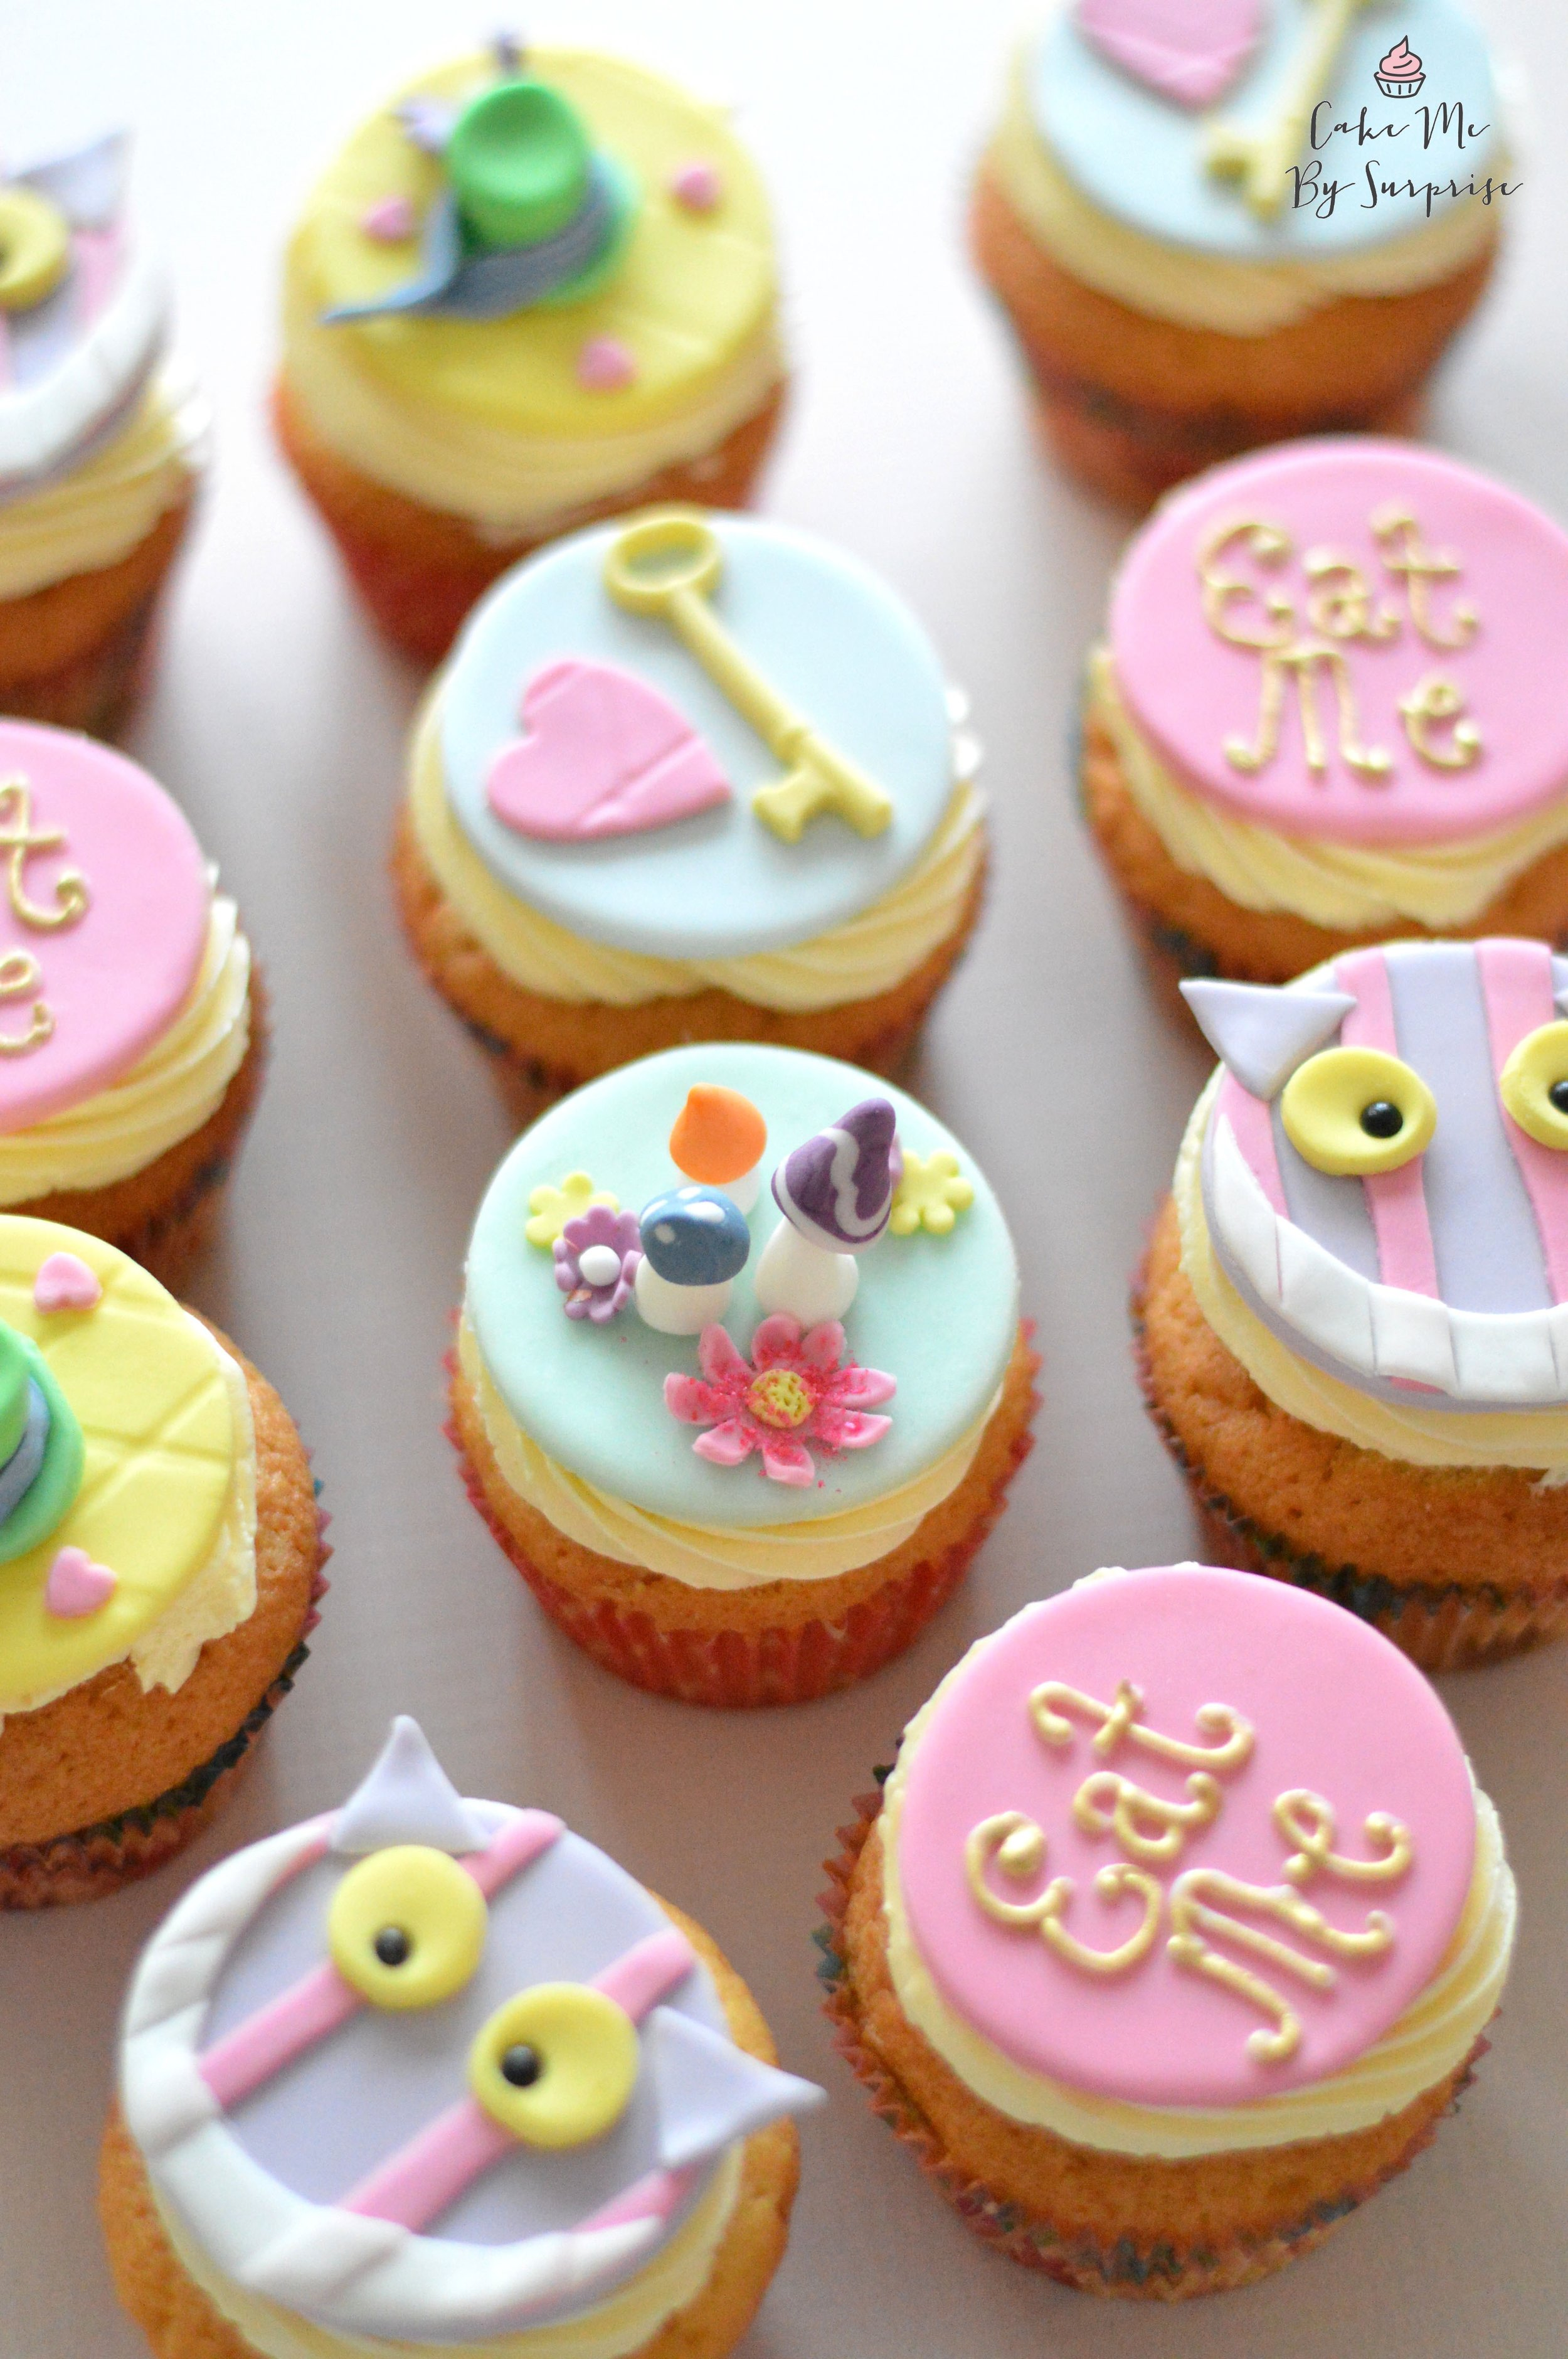 £38.00 for 12  Bespoke plaque cupcakes make the perfect treat for your party table. Personalise the design to fit your theme.